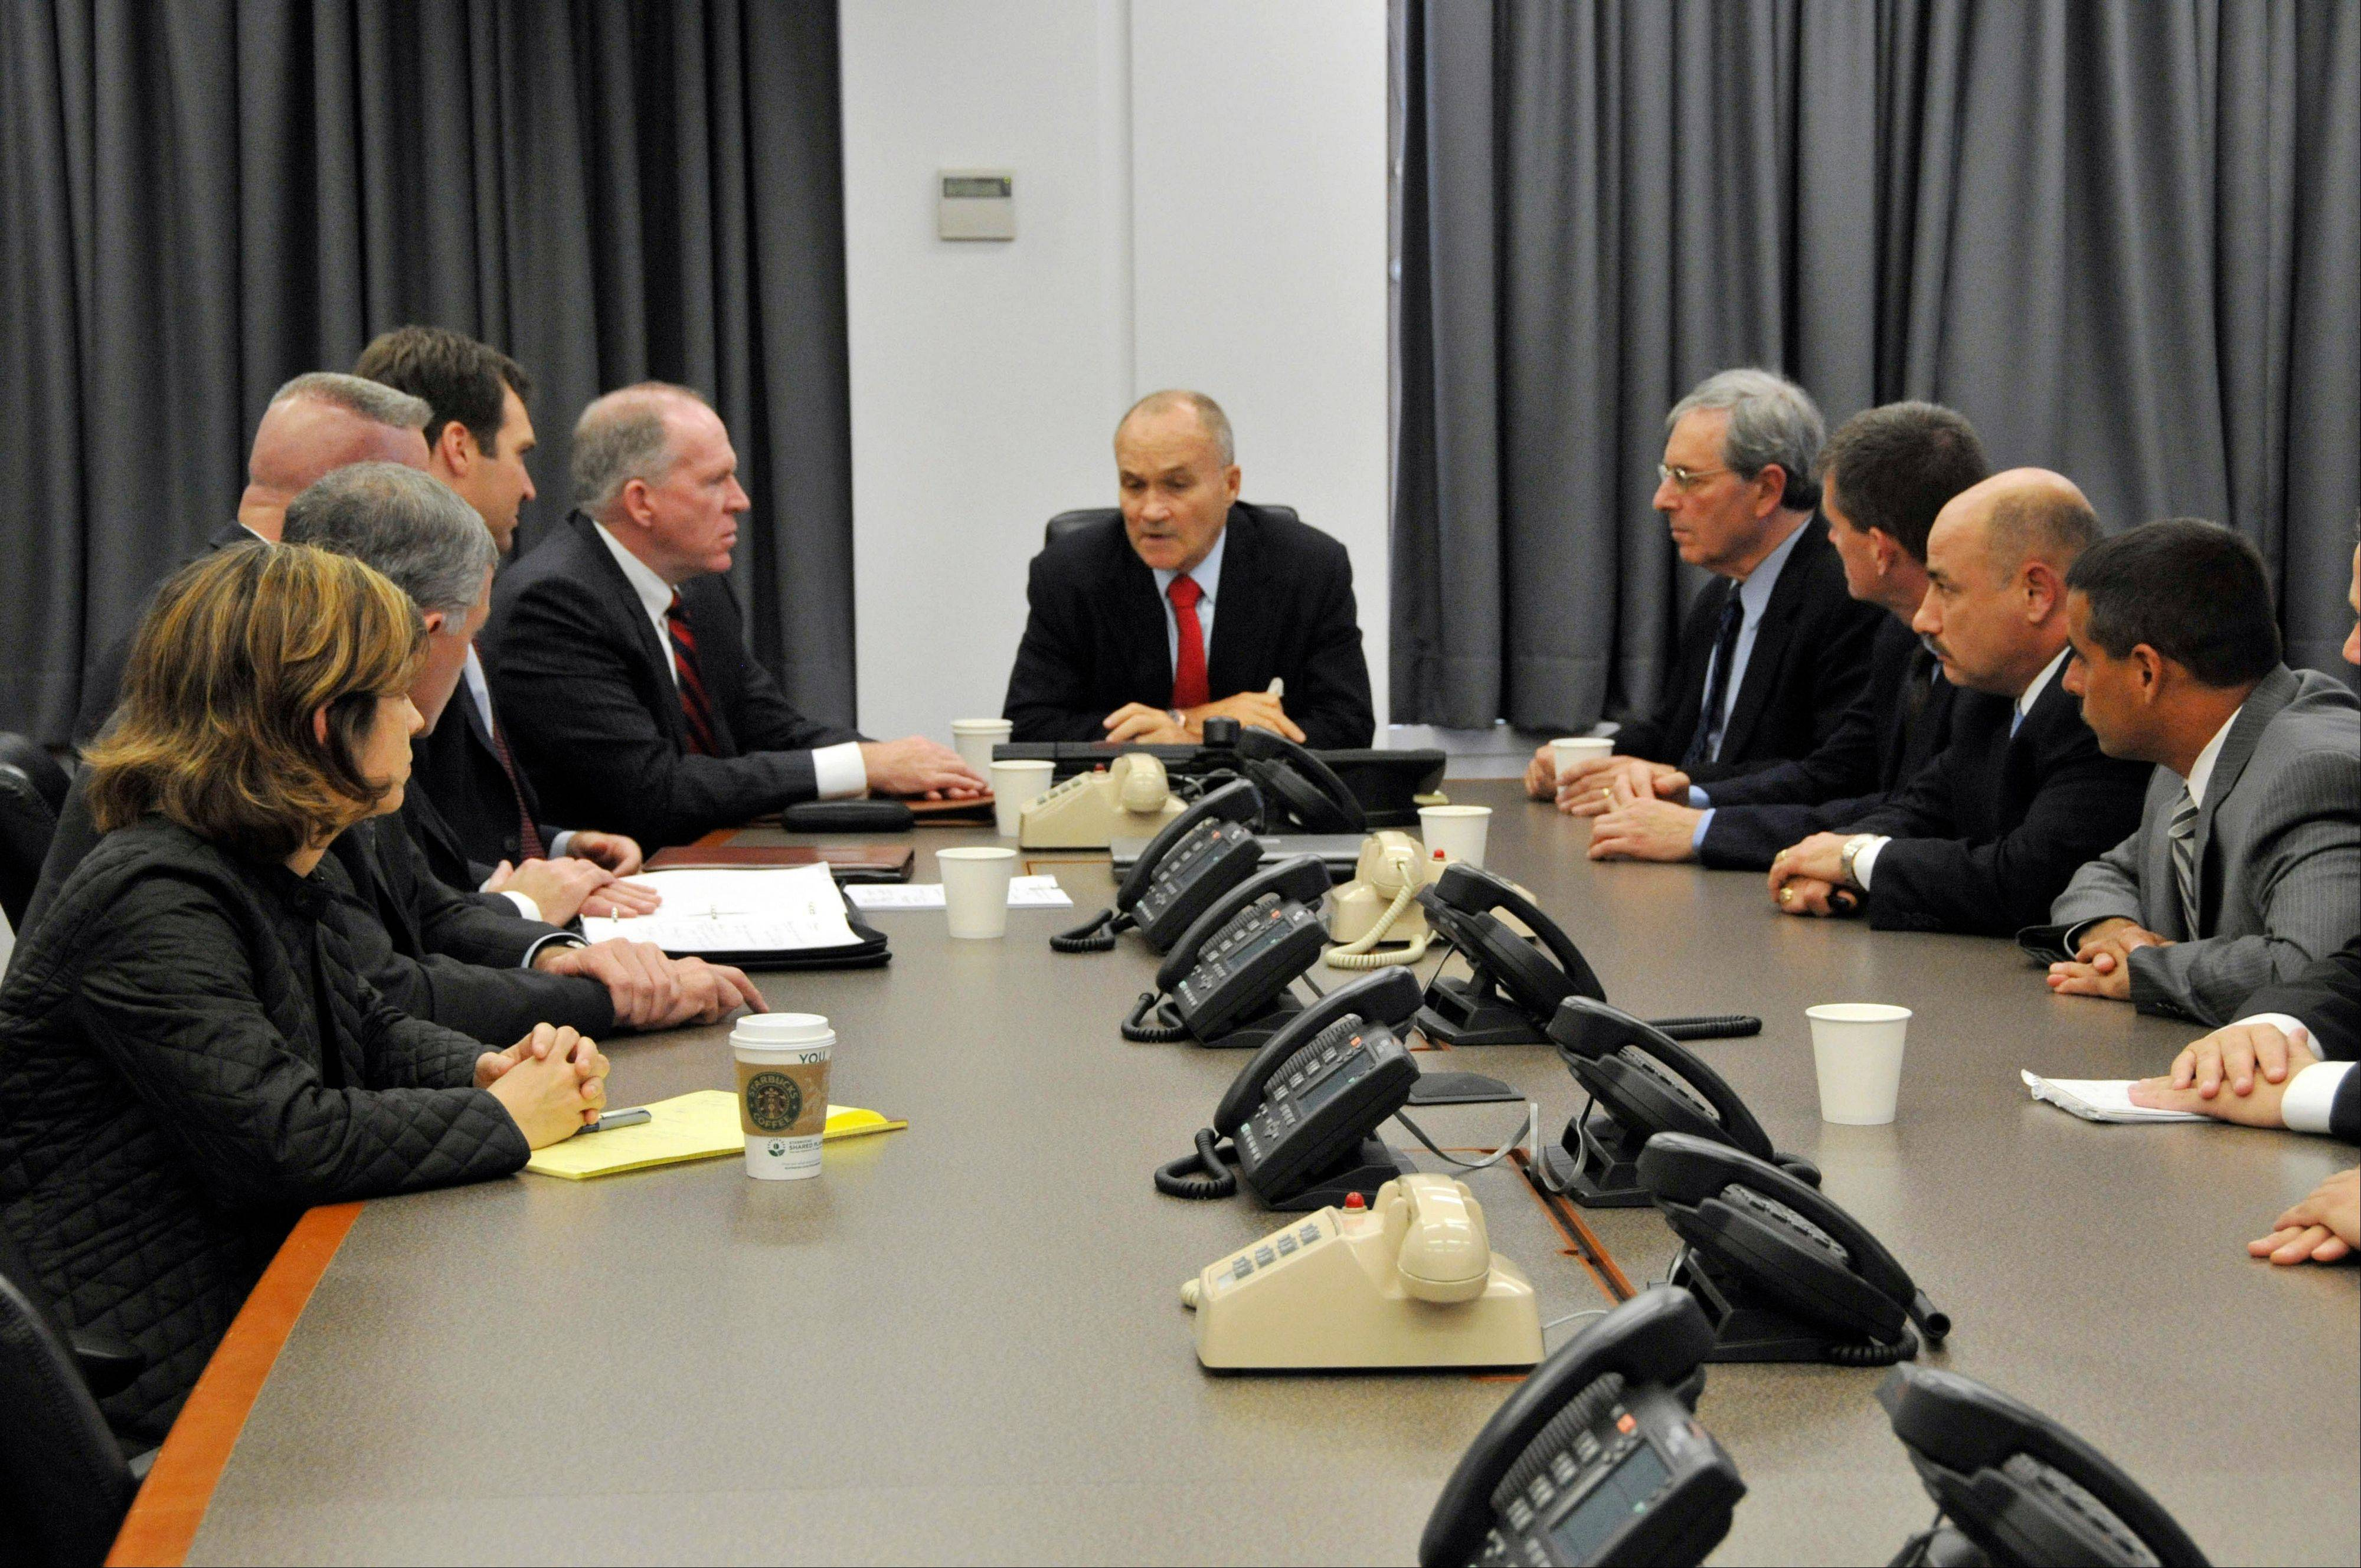 In this photo released by the New York City Police Department, NYC Police Commissioner Raymond Kelly, center, briefs other NYPD officials and John O. Brennan, assistant to the President for Homeland Security and Counterterrorism, center right, on events surrounding the alleged plot to bomb NYC commuter trains on Sept. 11, at Police Headquarters in New York, Saturday, Sept. 26, 2009.